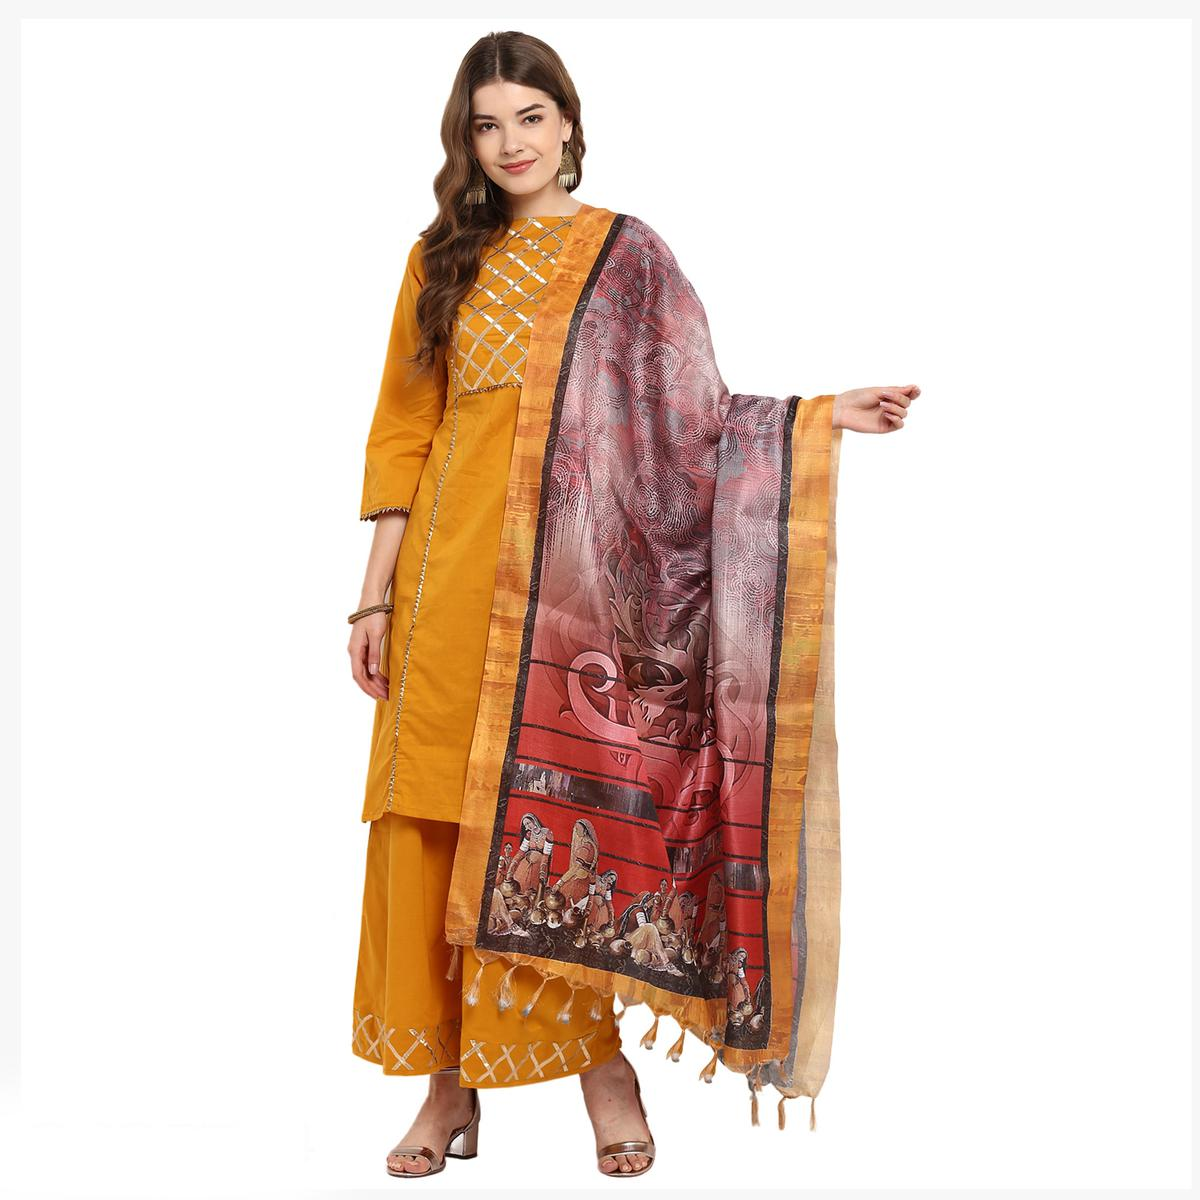 Staring Multicolored Digital Printed Khadi Silk Dupatta